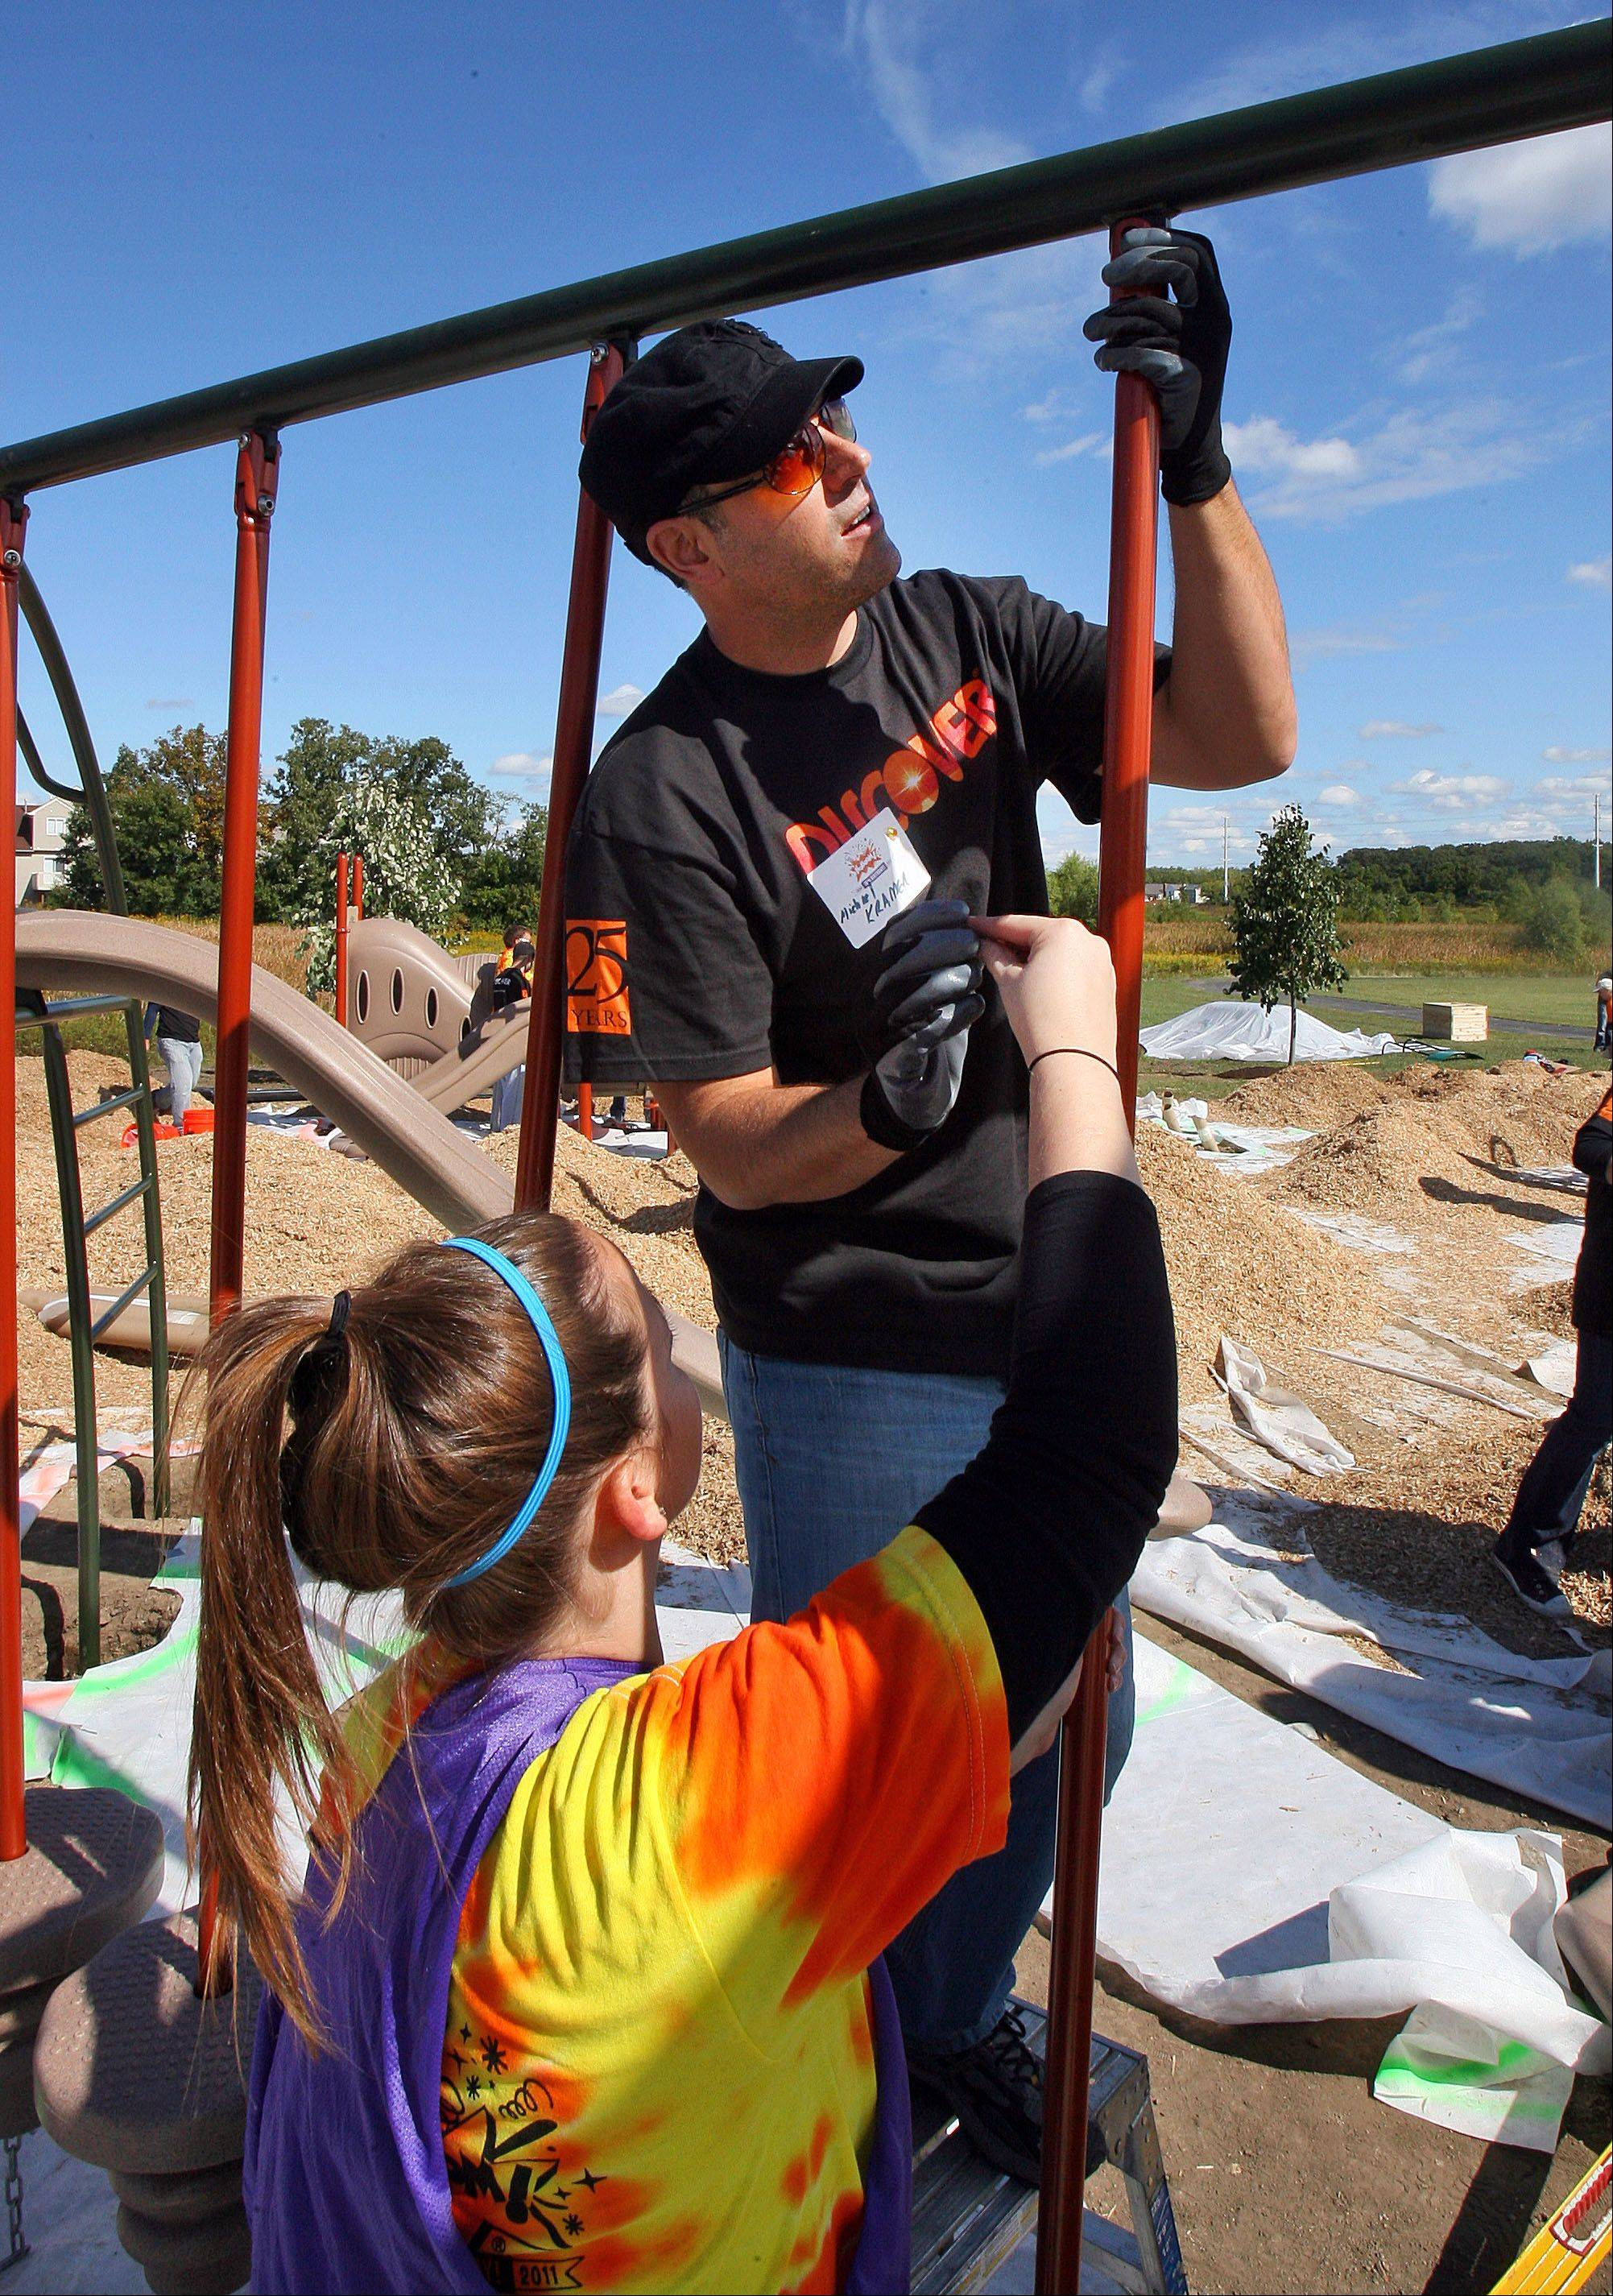 Discover employees Jessica Goodman, left, and Michael Kramer assemble a swing set Friday during a volunteer project to build a new playground at the Round Lake Sports Complex. More than 500 volunteers from Discover, the Round Lake Area Park District, Friends of the Round Lake Area Parks Foundation and KaBOOM! participated.